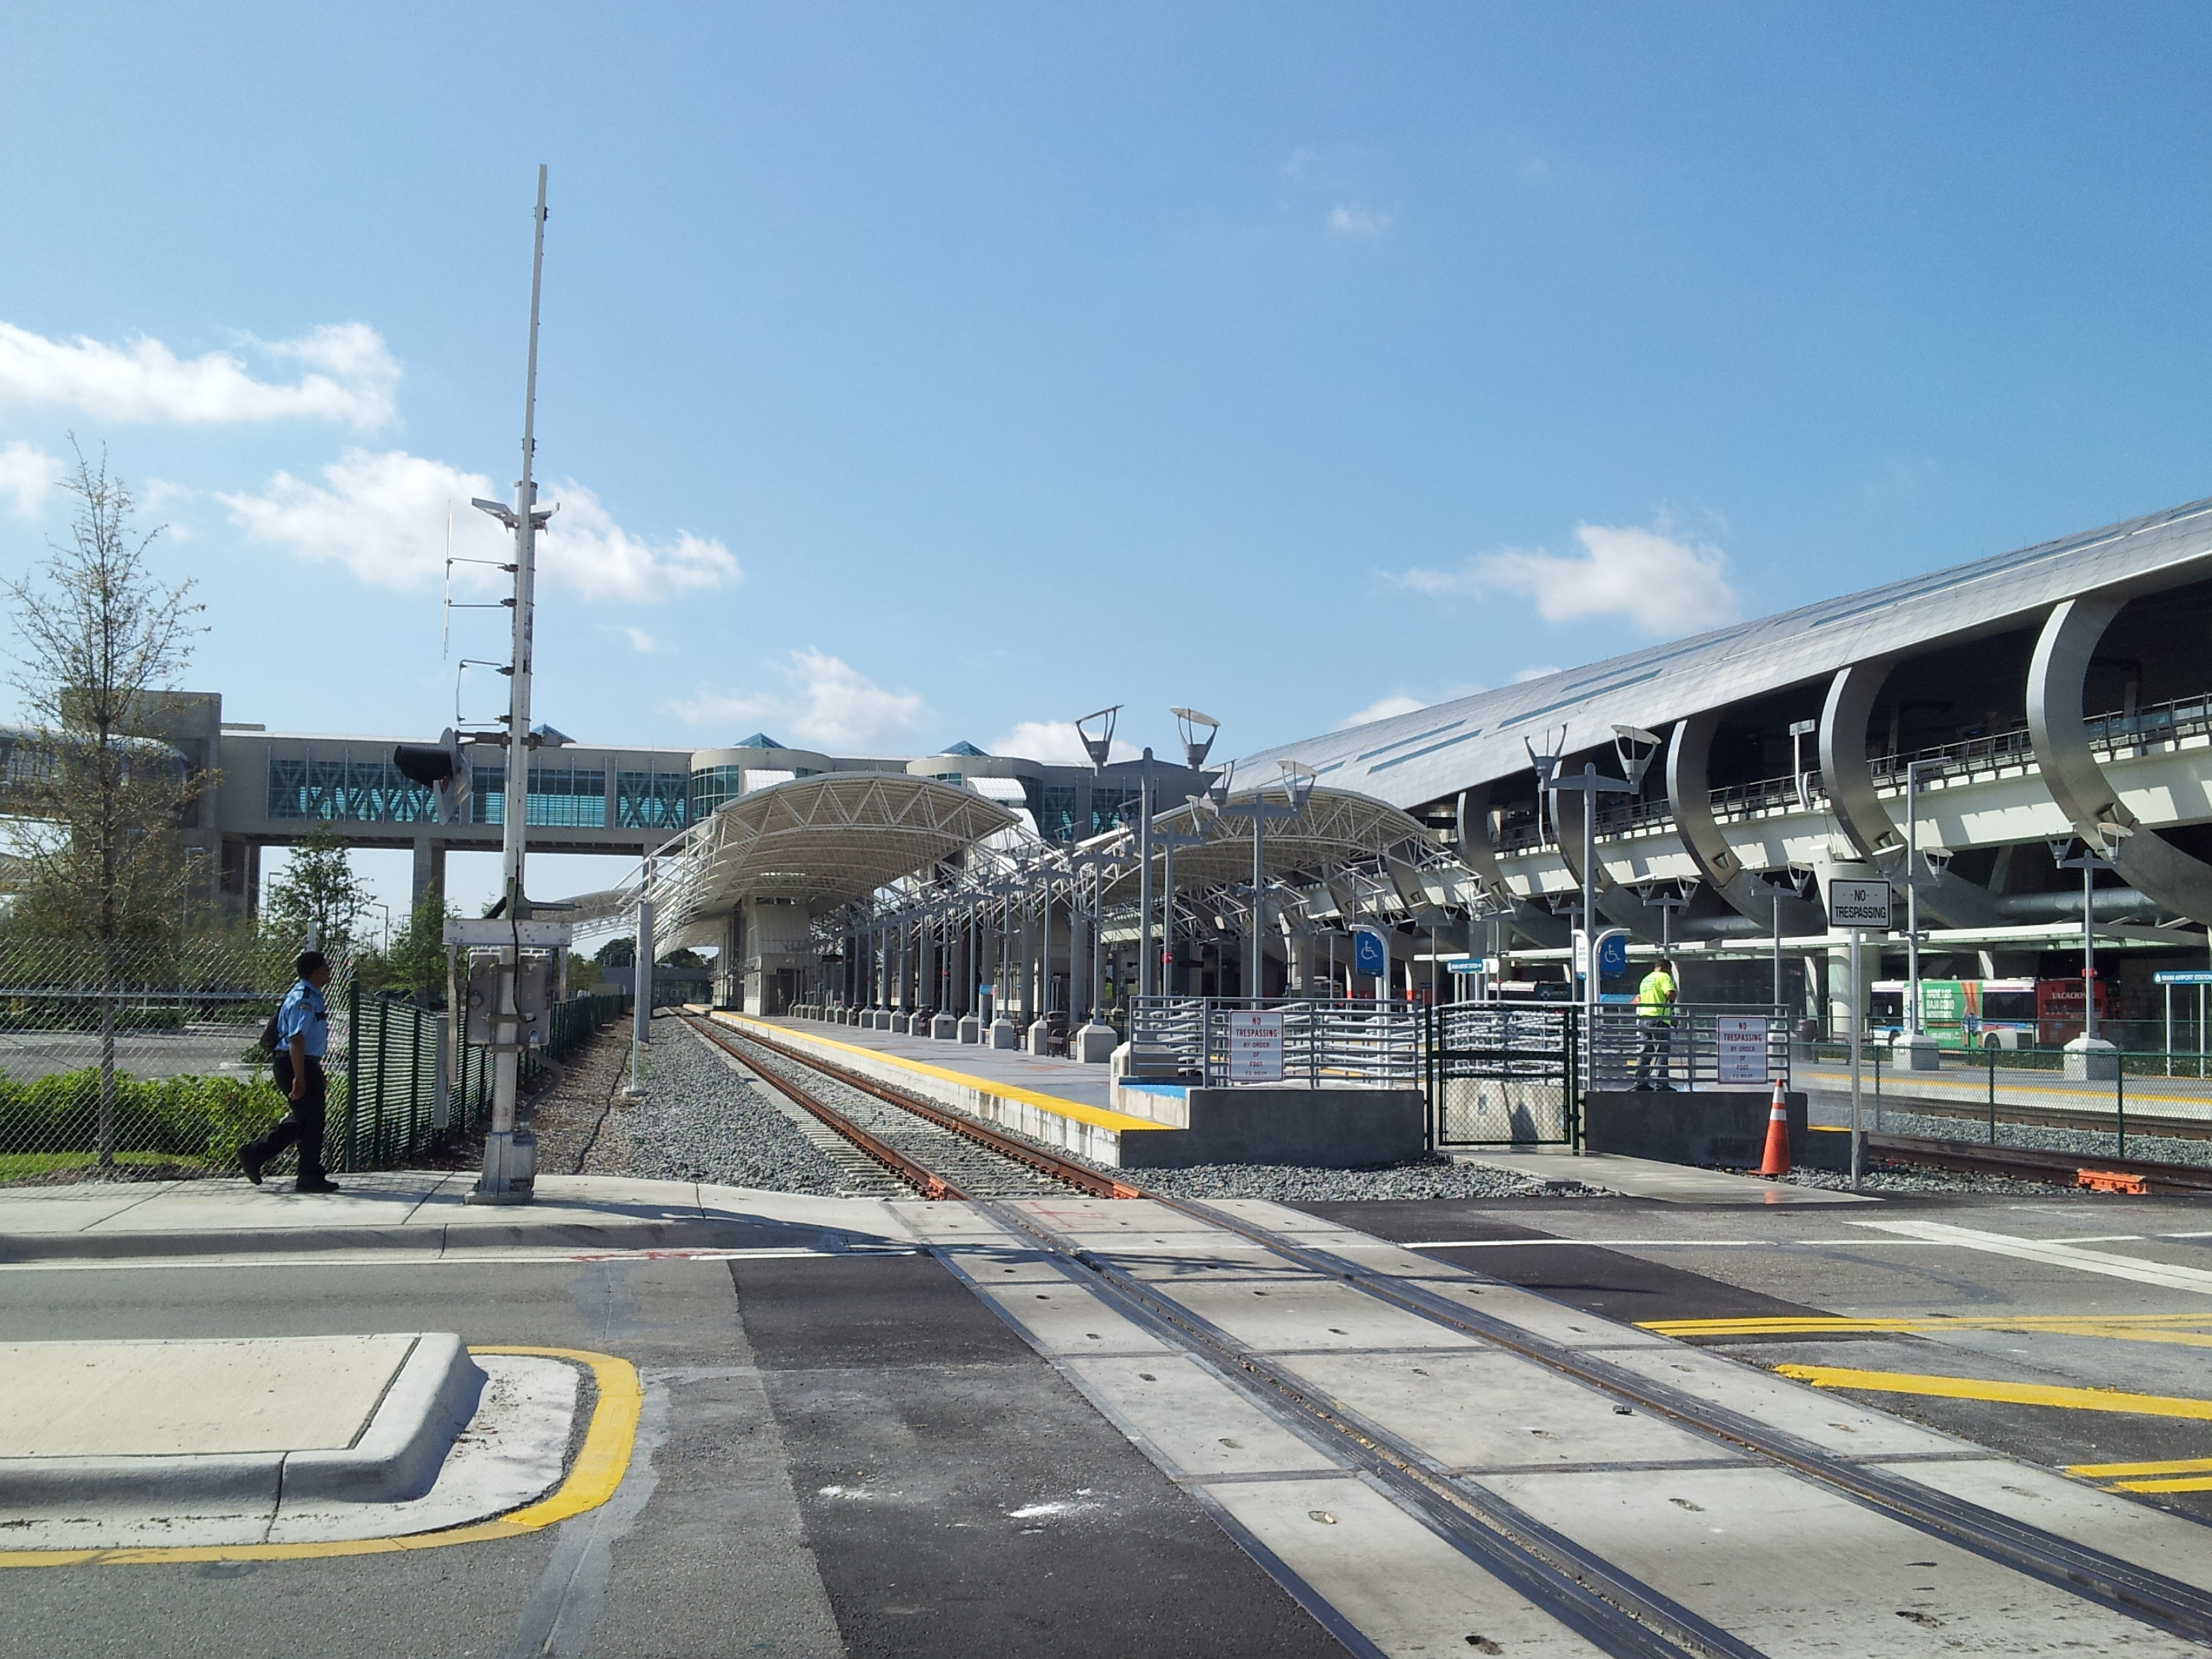 Miami Metrorail Airport To South Beach